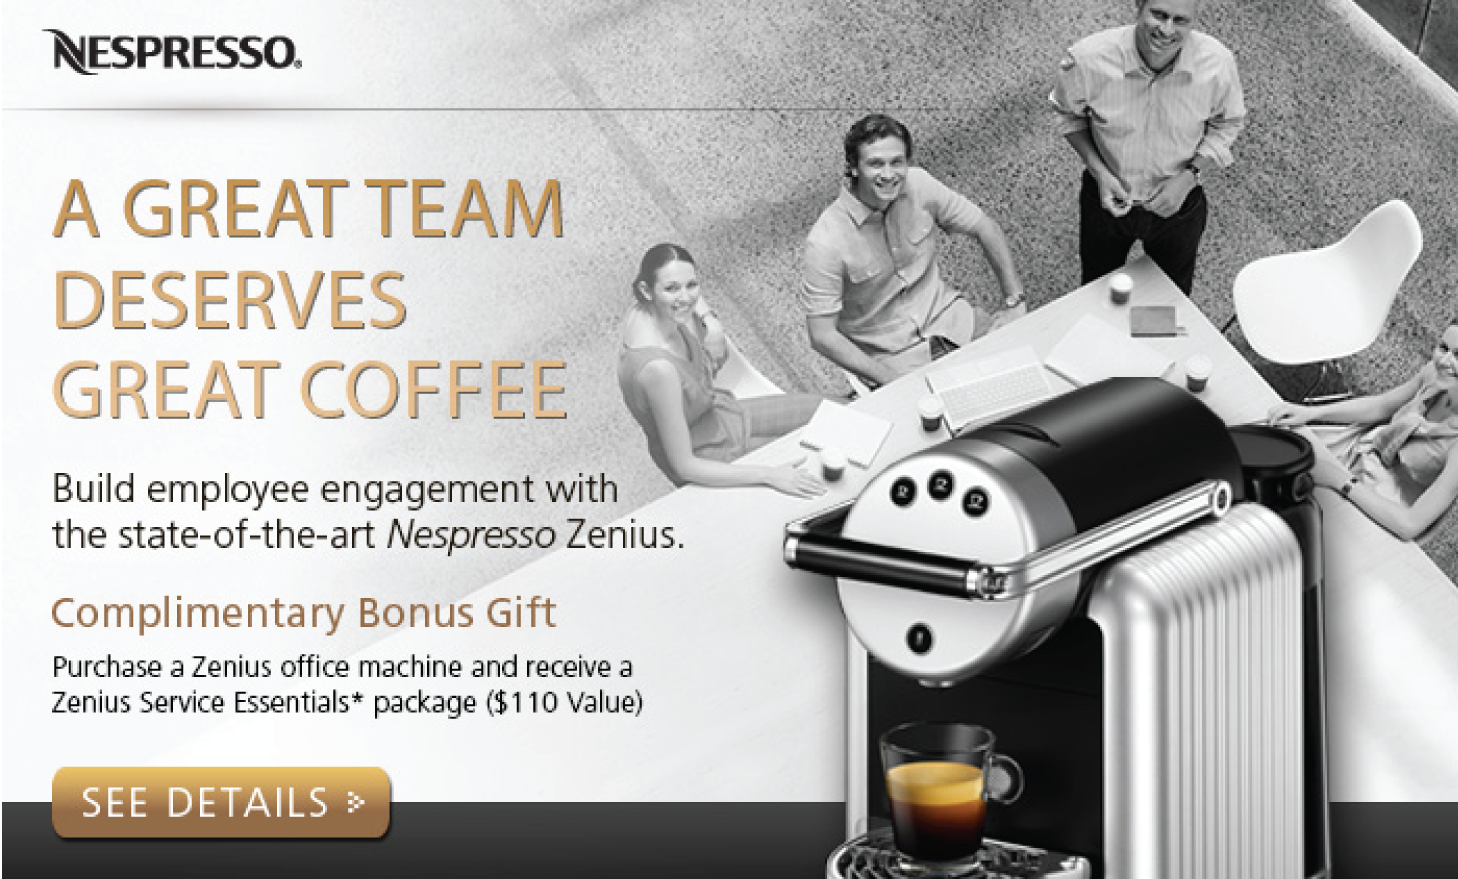 Nespresso-for-Employee-Engagement-01